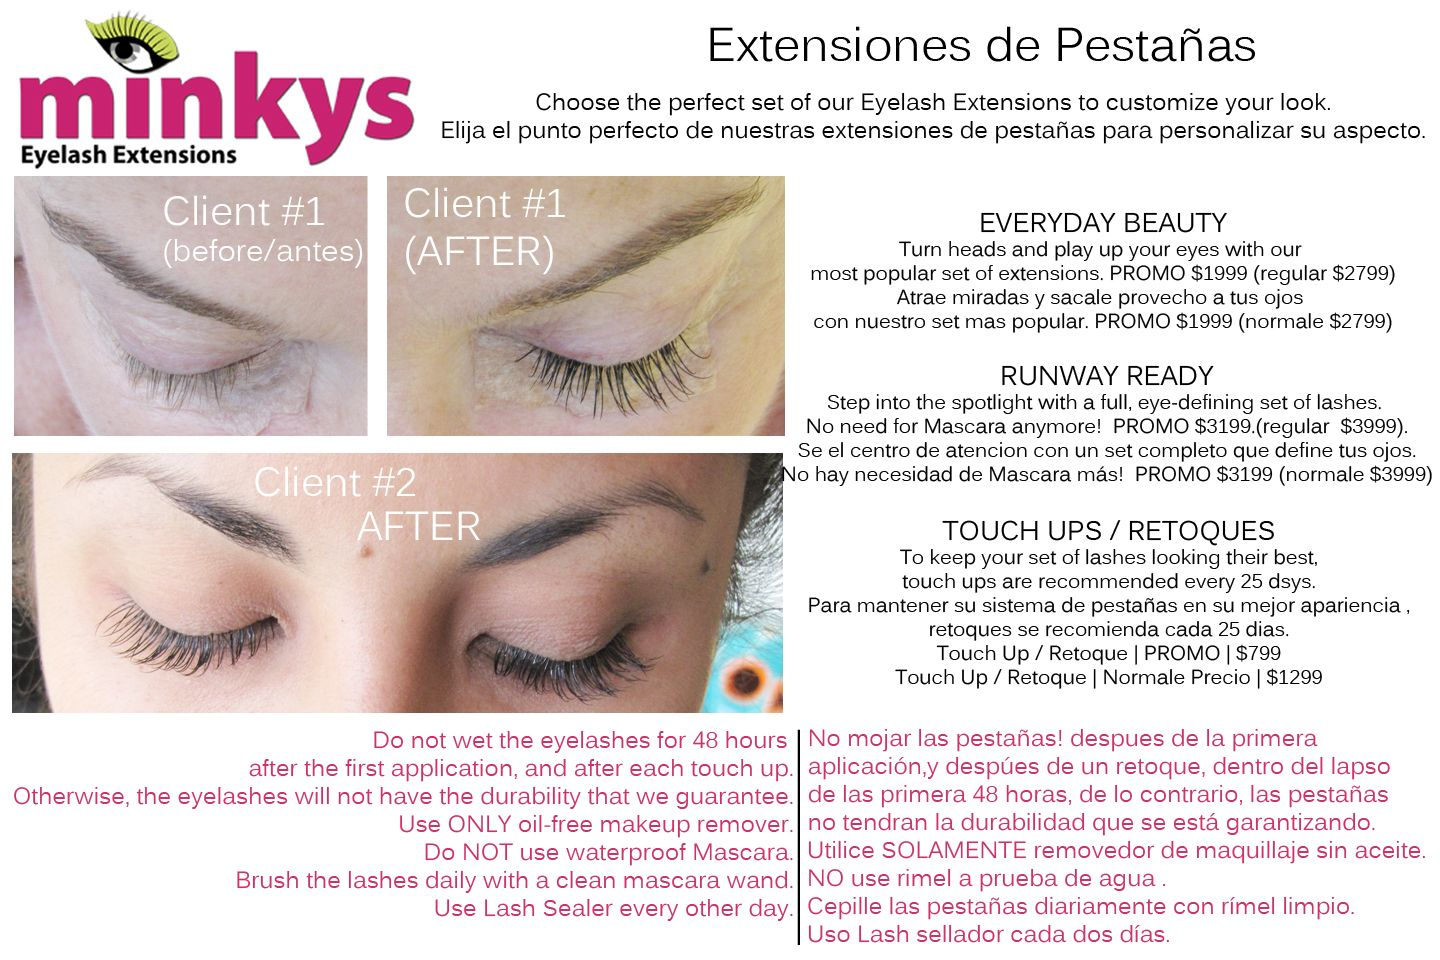 Salon de Belleza Merida | Hair Salon Merida. MINKYS EYELASH ...